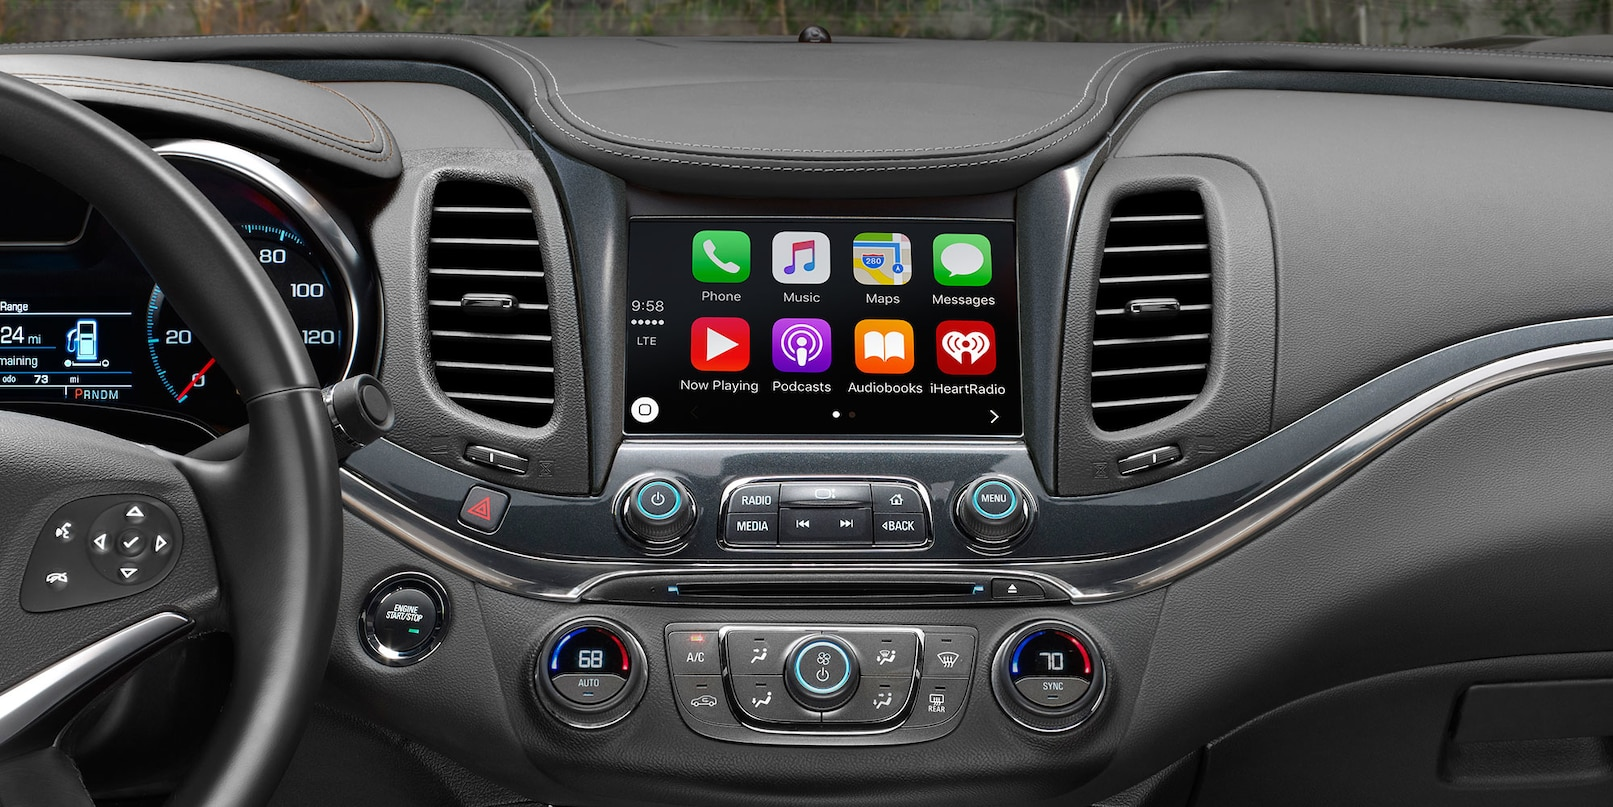 Technology in the 2018 Impala